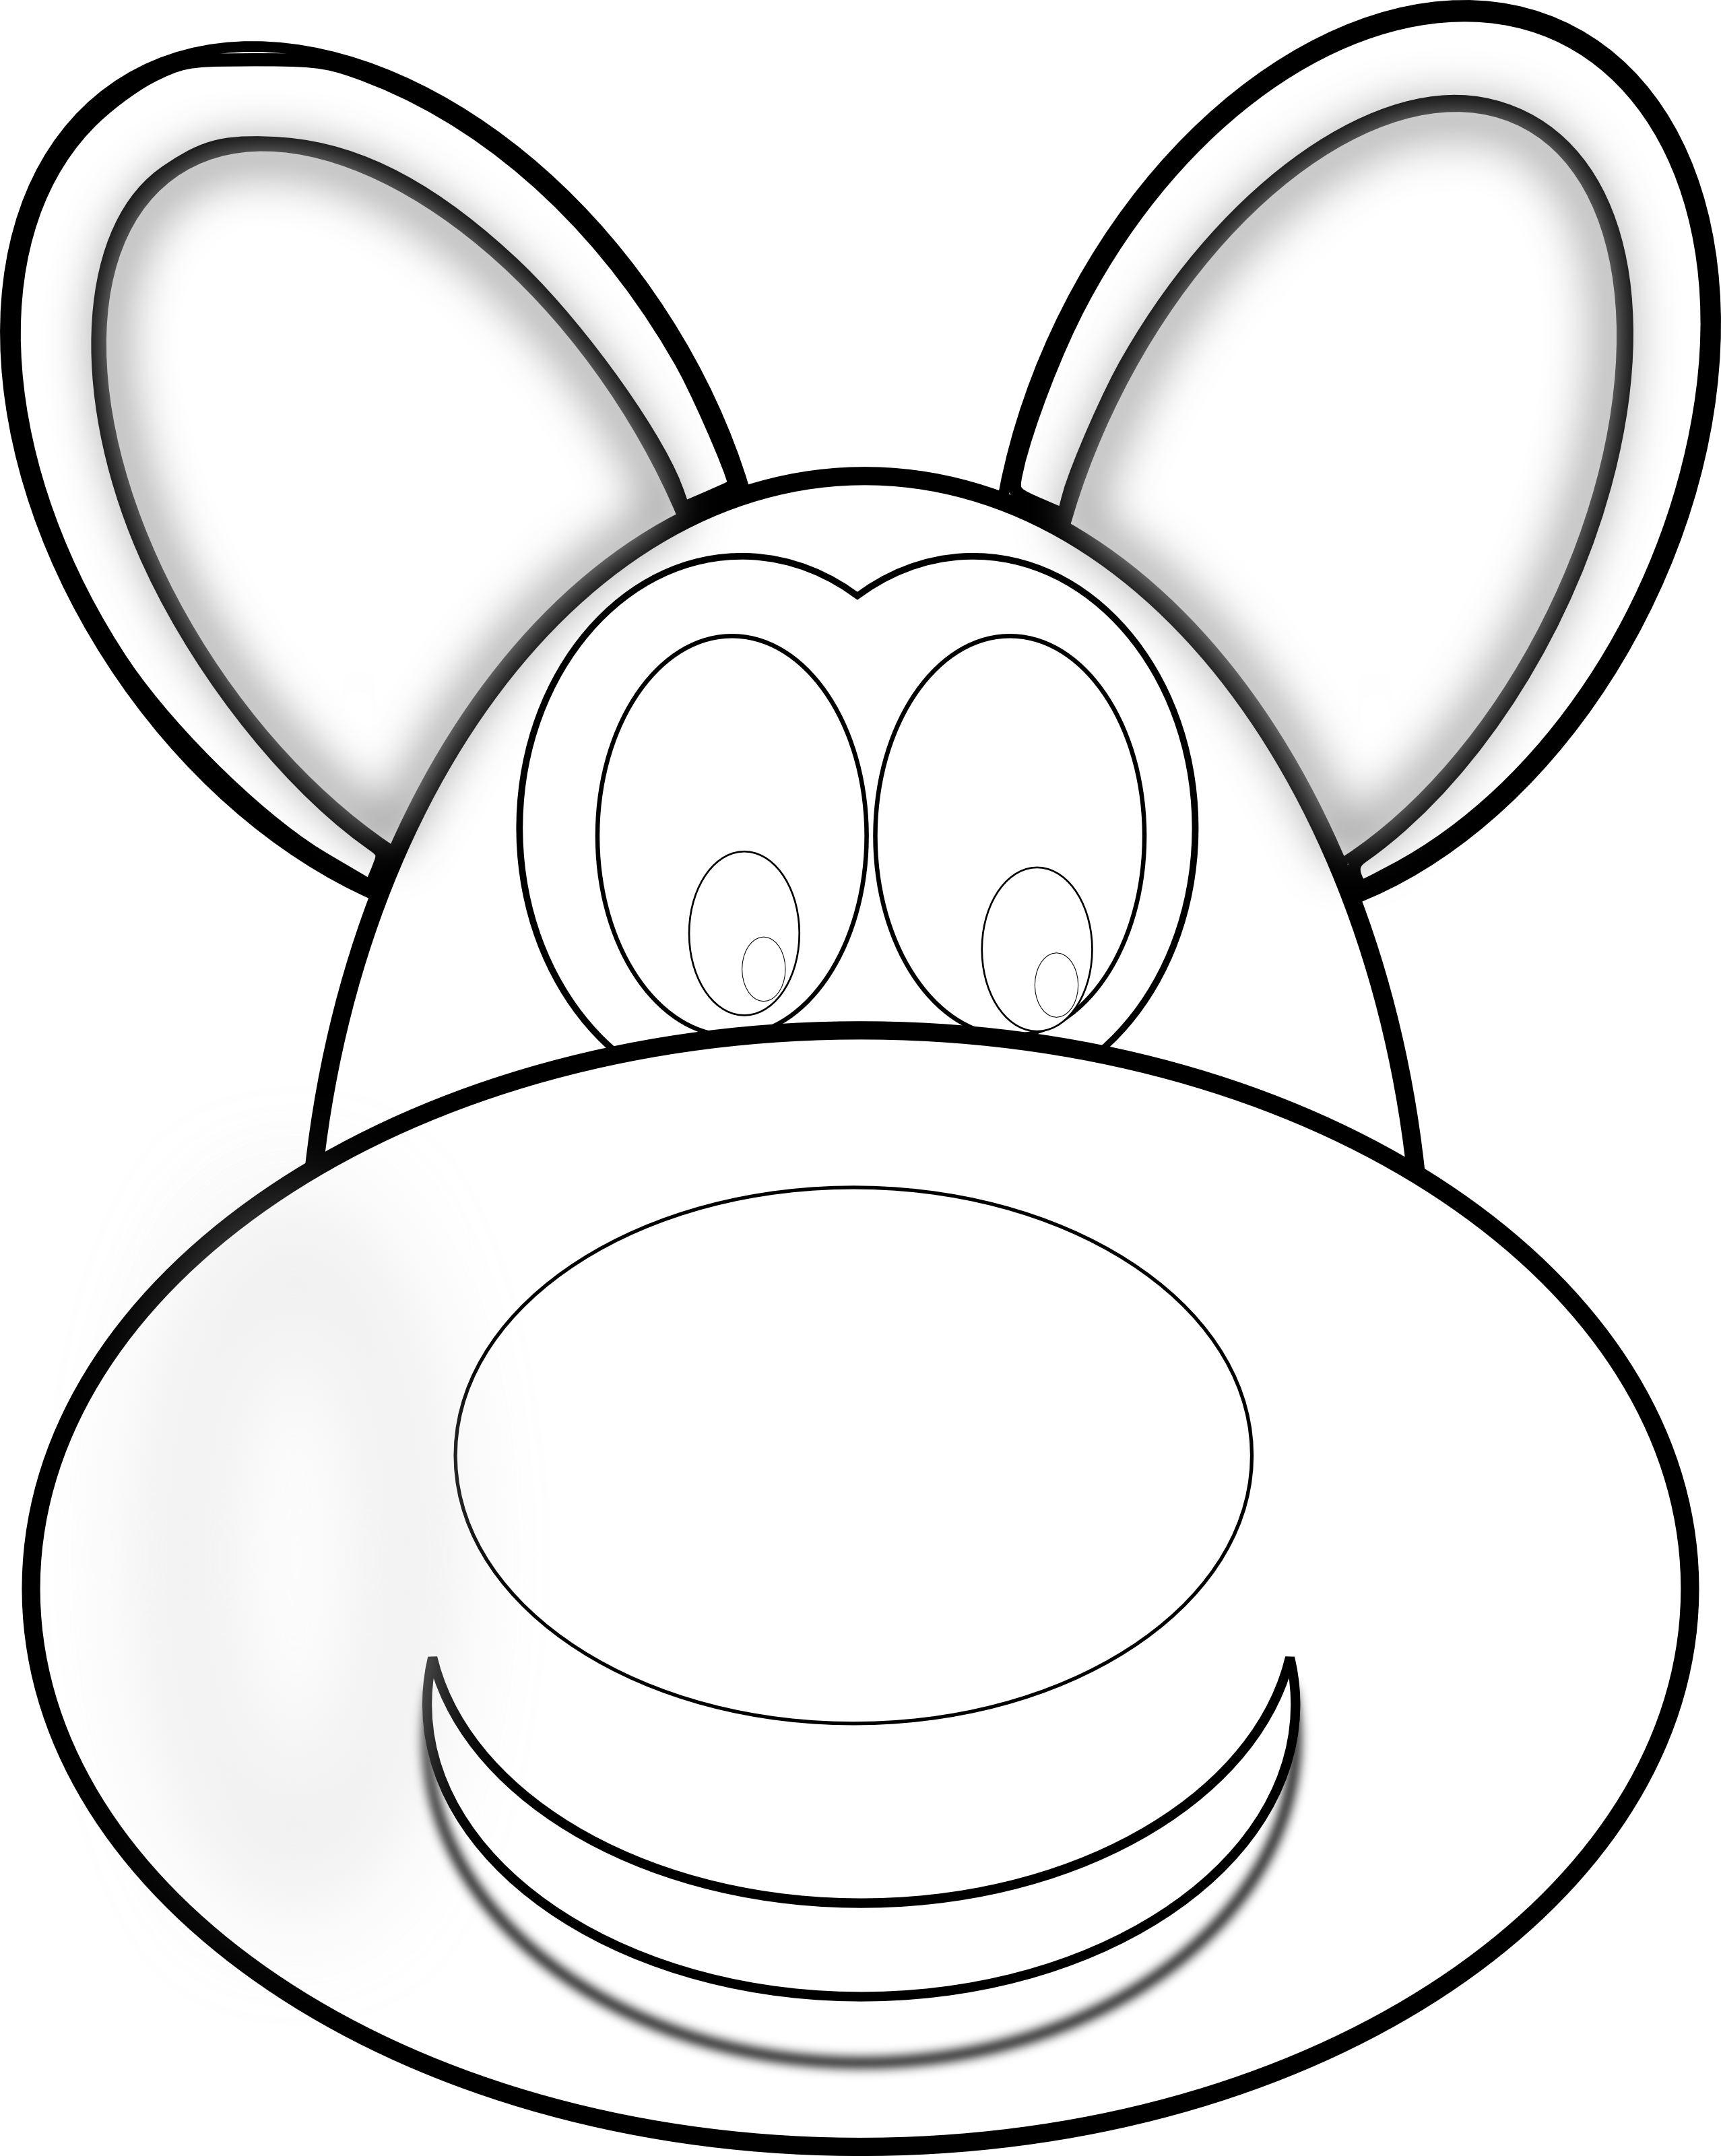 Dog head clipart black and white vector free download Stuffed Animal Clipart dog - Free Clipart on Dumielauxepices.net vector free download